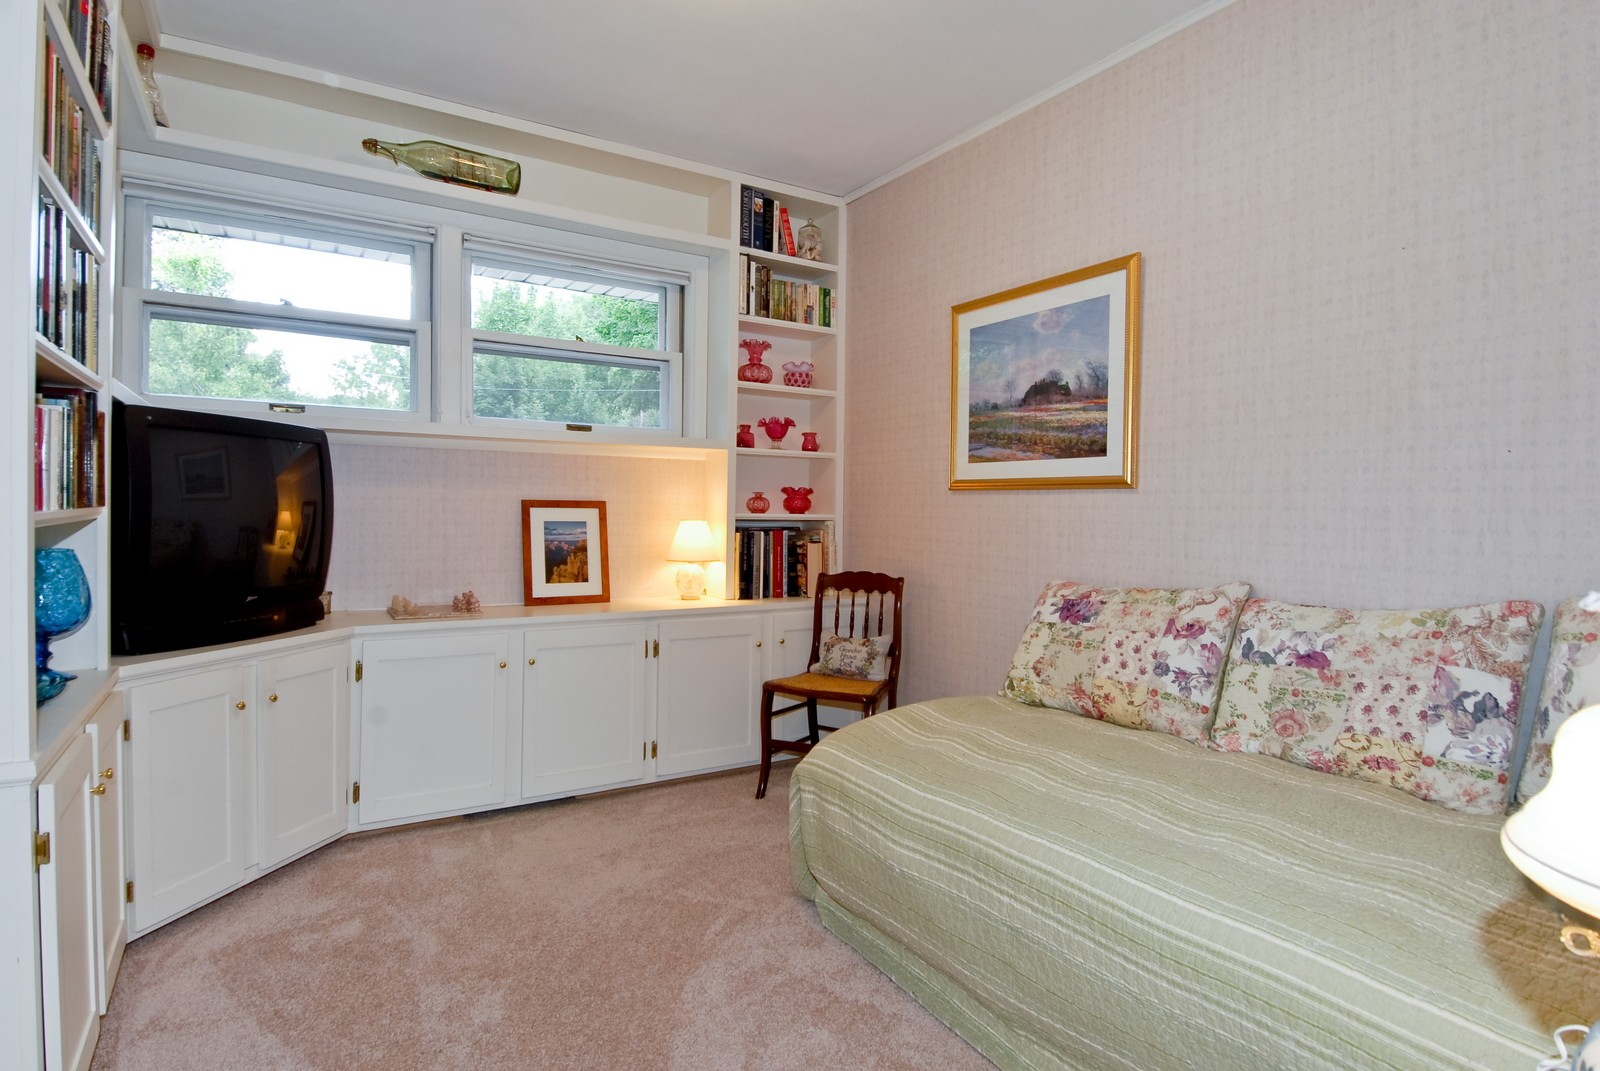 Real Estate Photography - 525 S McKinley St, St Charles, IL, 60174 - 2nd Bedroom